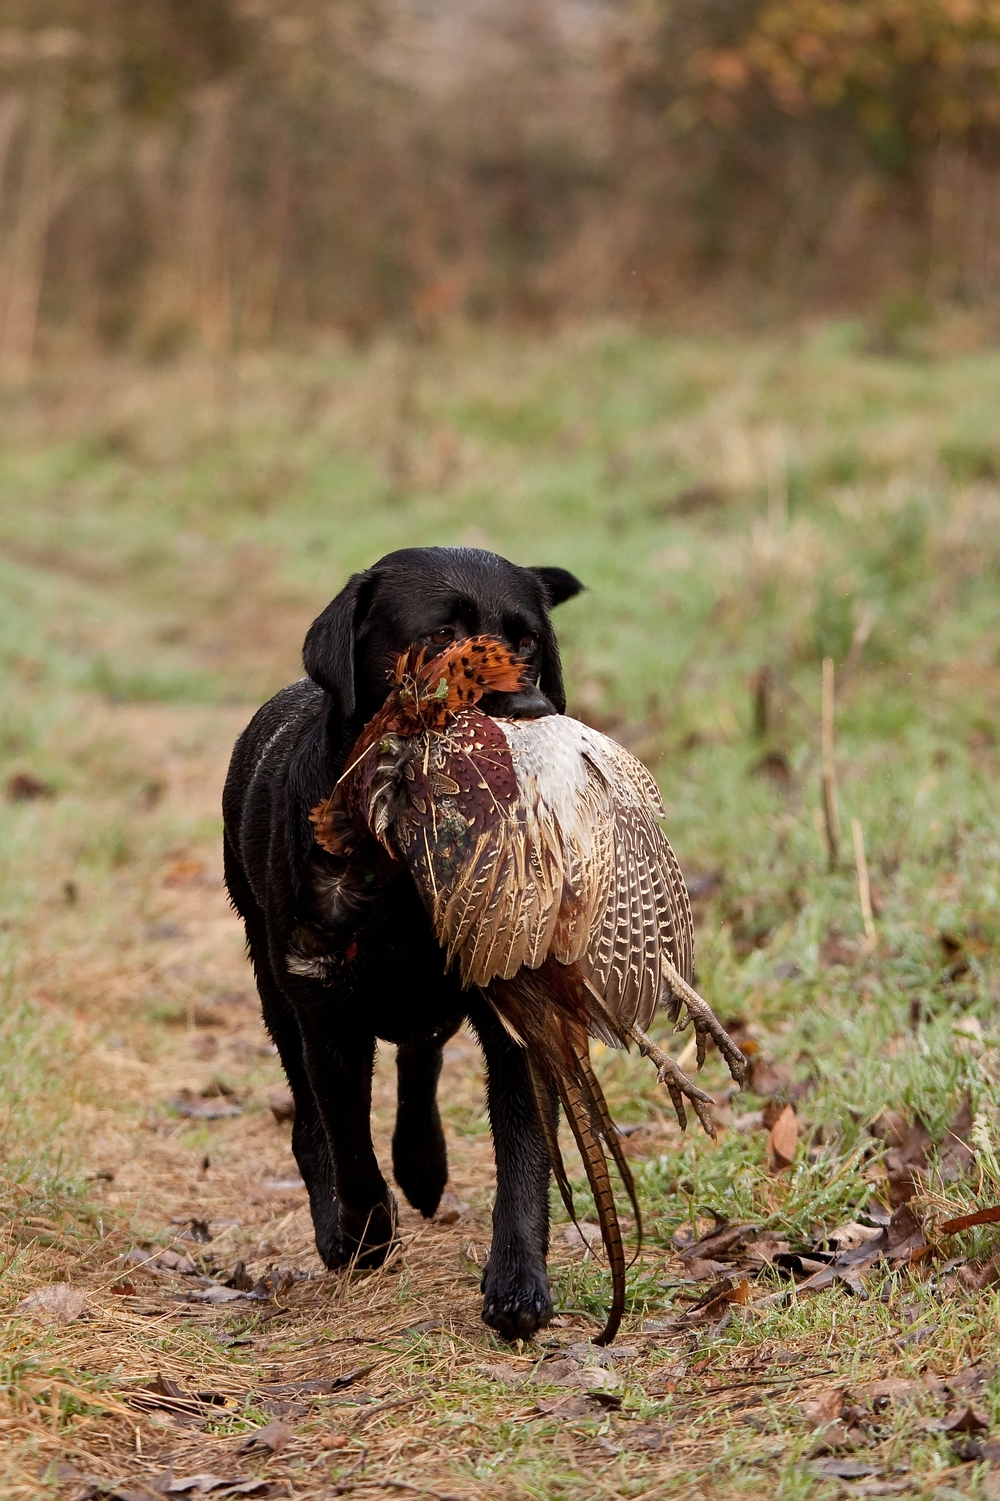 bigstock-Hunting-Dog-Retrieving-A-Pheas-6417971.jpg